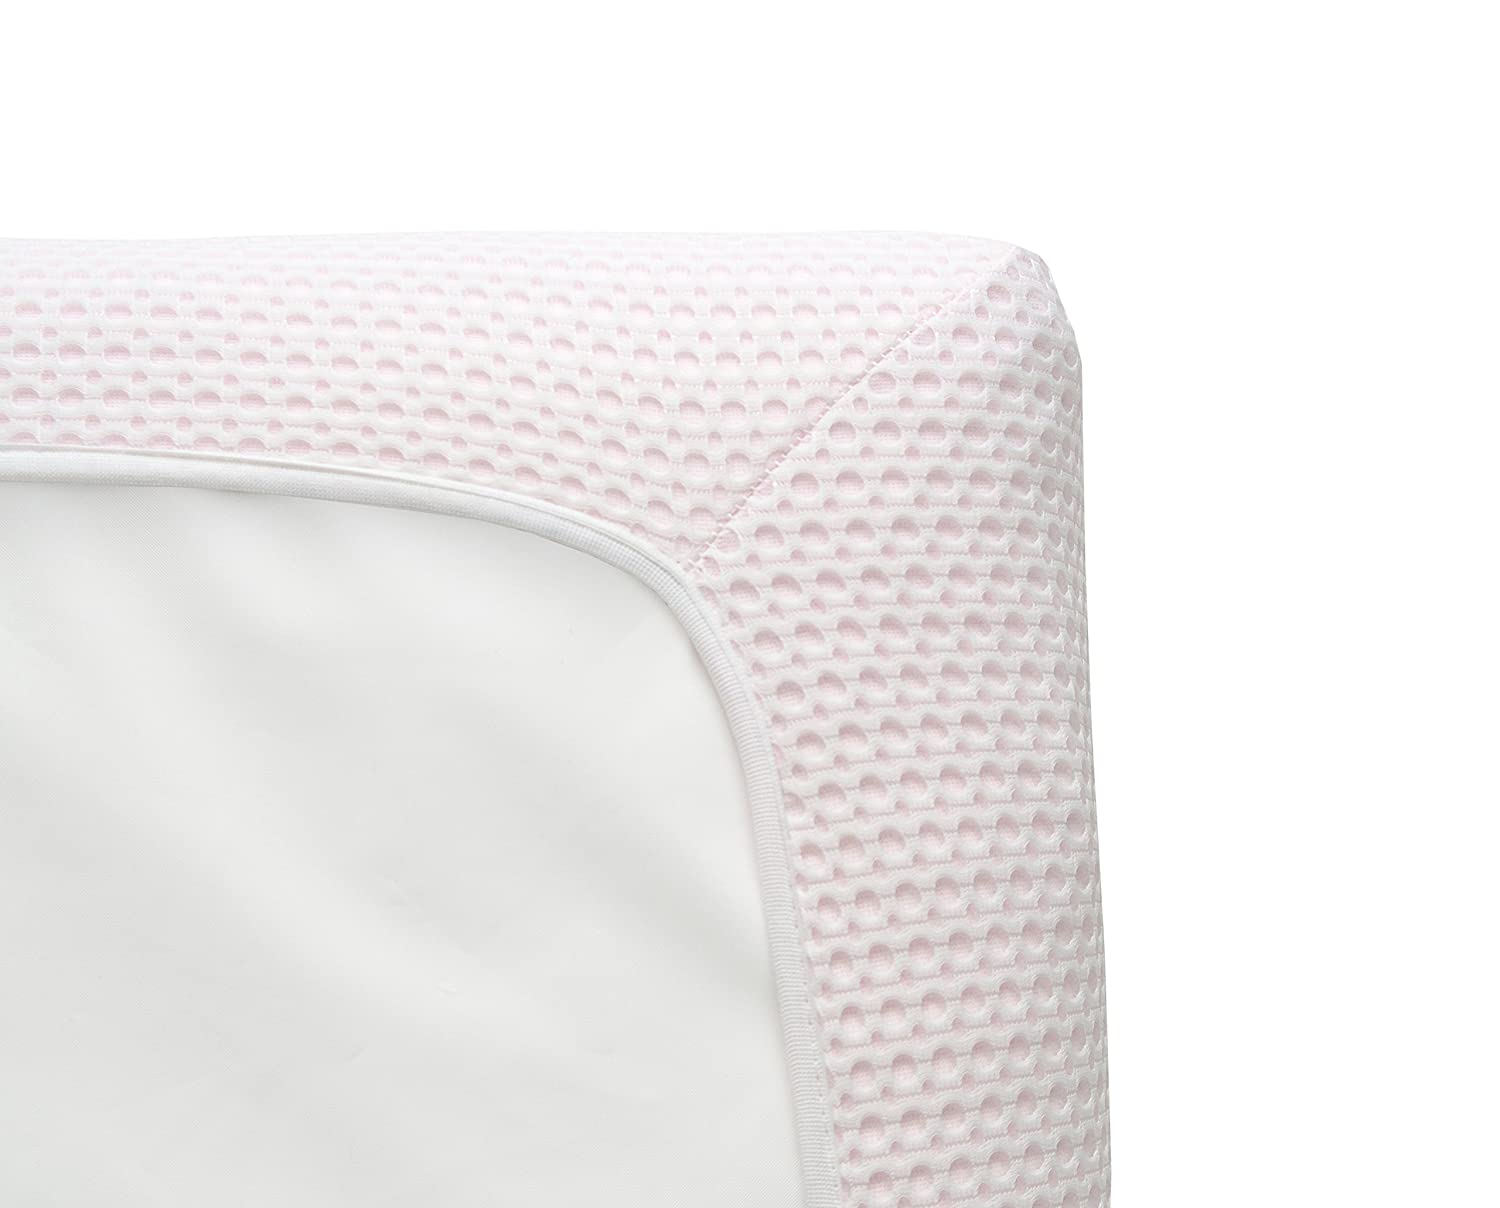 Lullaby Earth Breeze Breathable Crib PAD - Pink Naturepedic BRZ PINK